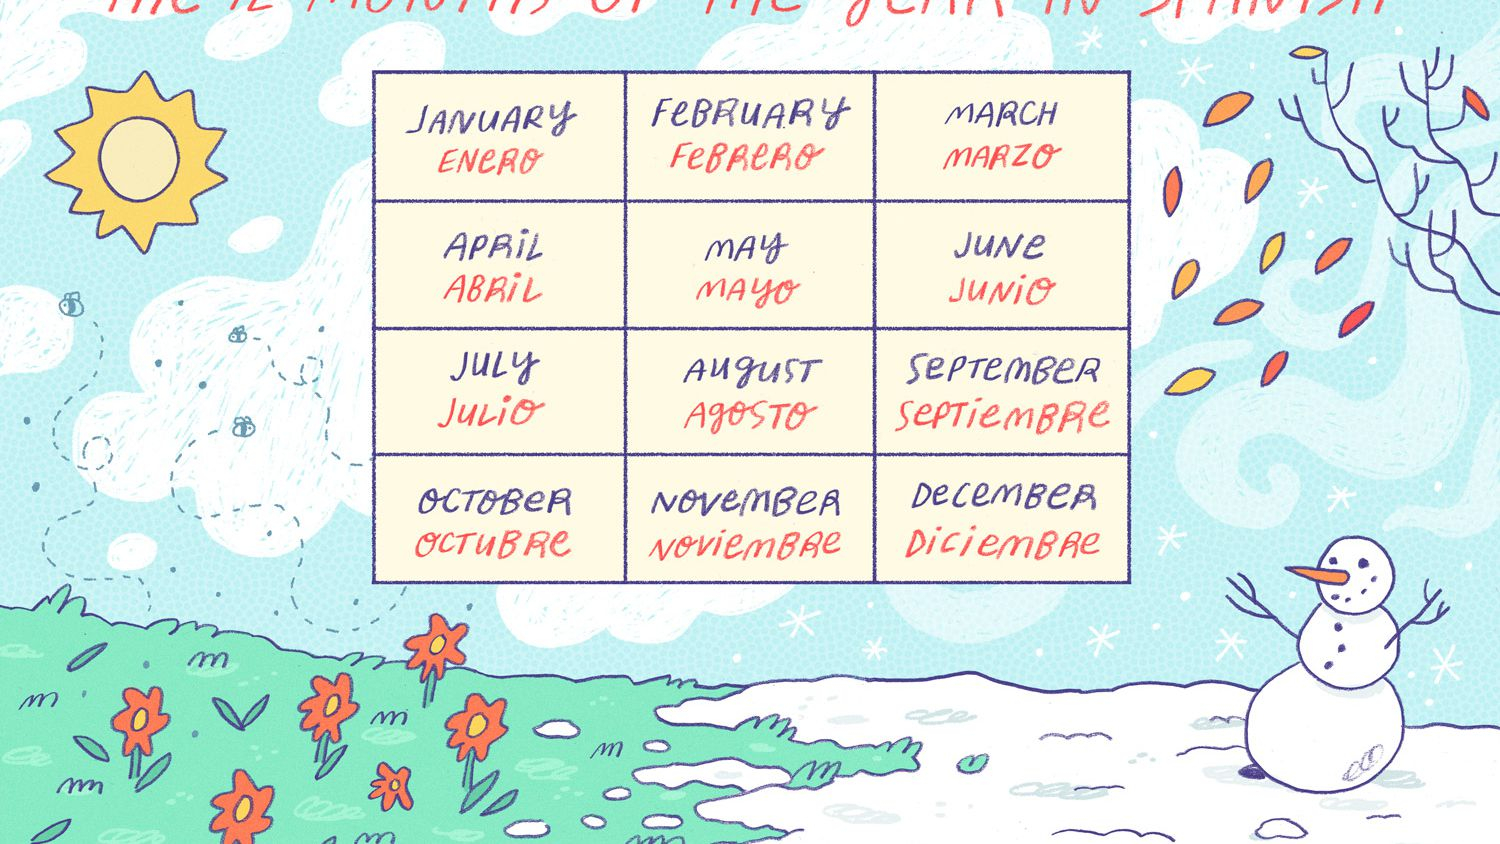 Months Of The Year In Spanish With Regard To Mexican Calendar For Names